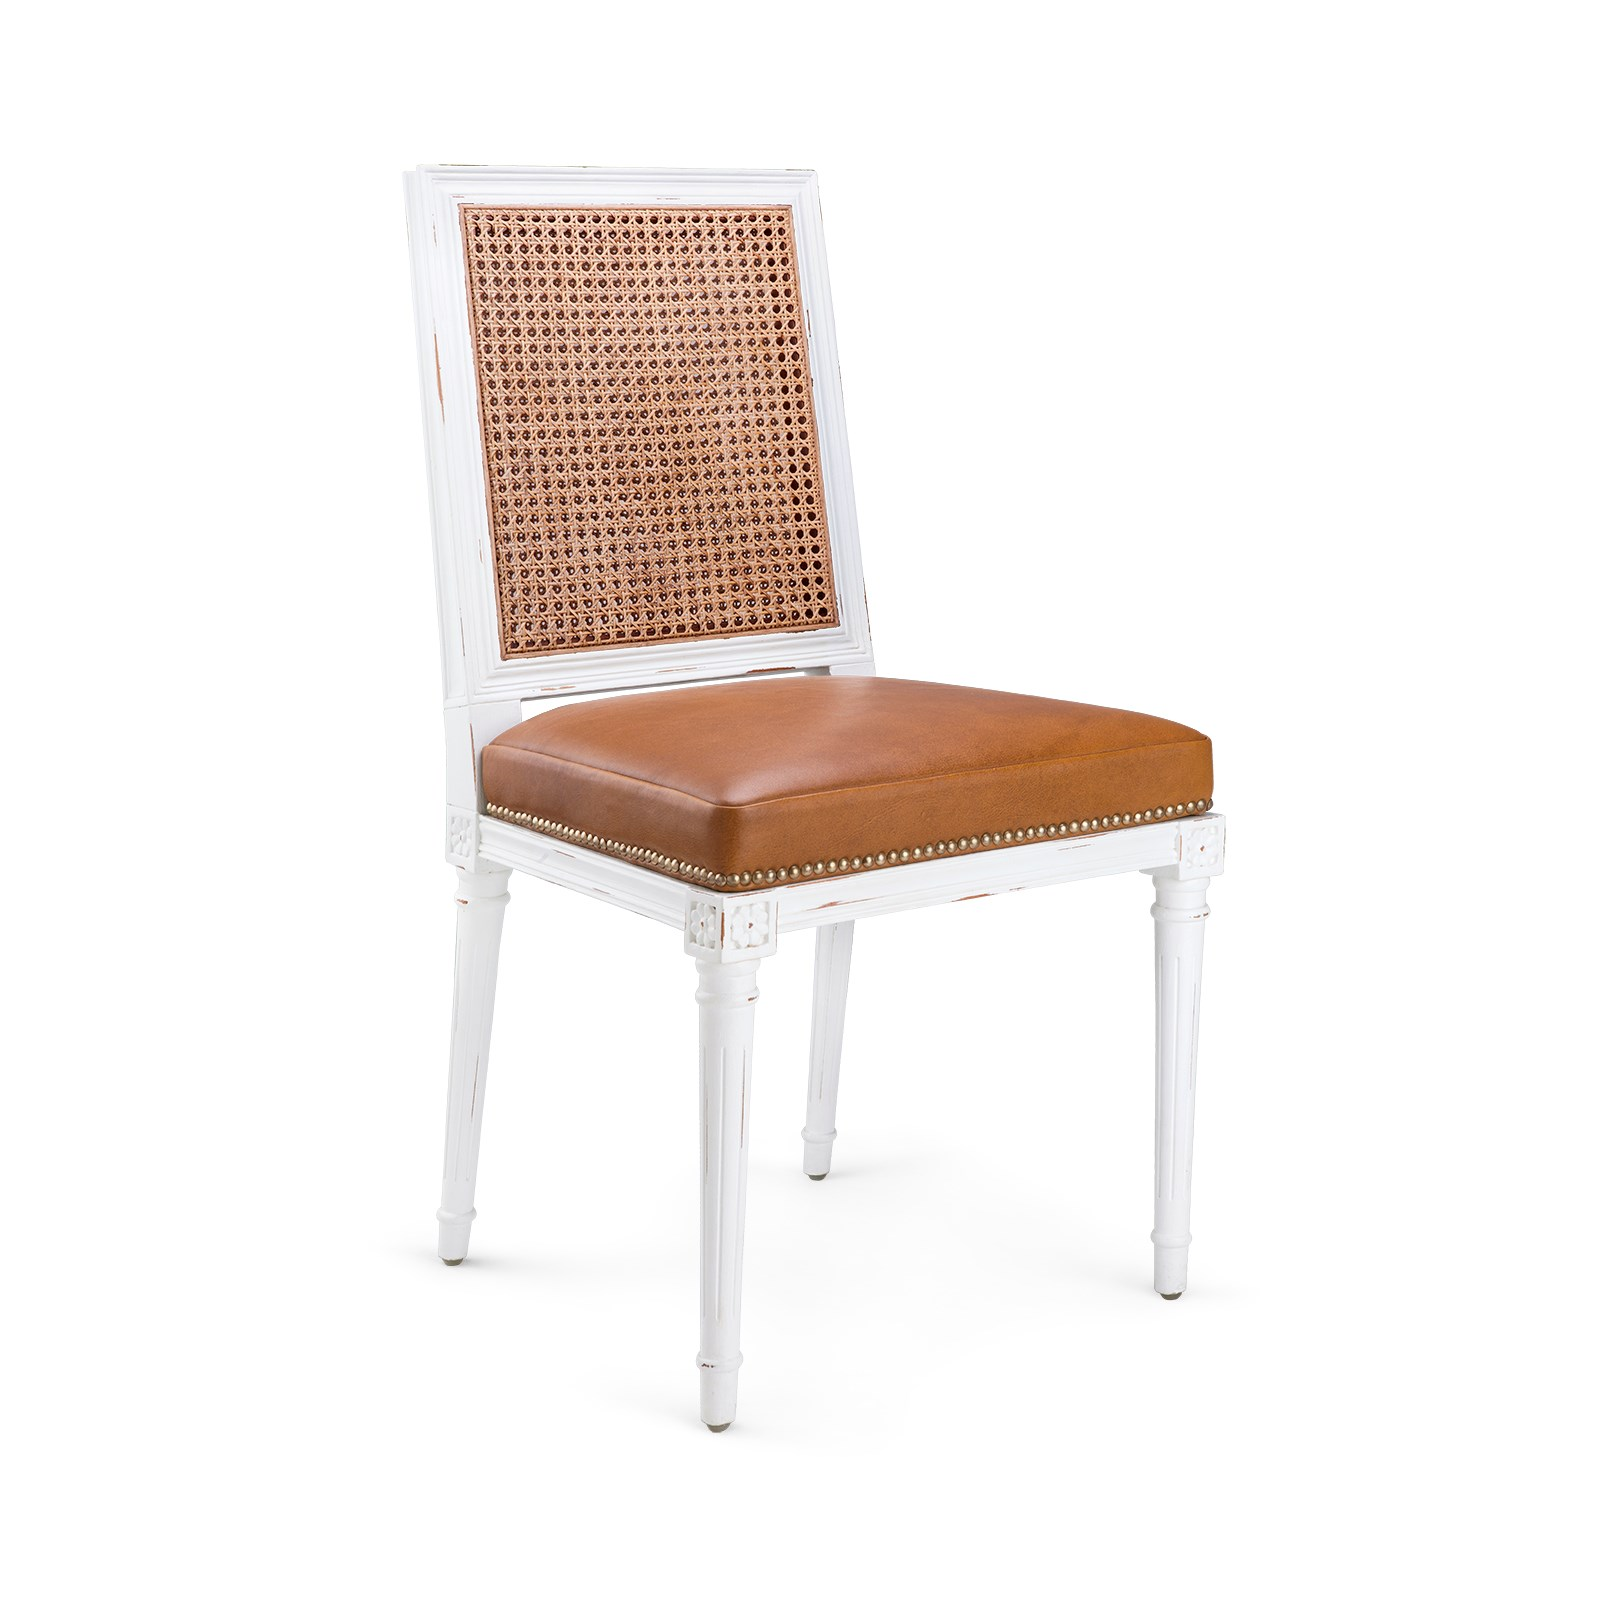 100 Orange Chair Shift Foldable Dining Chair  : AUG 550 09lg from 45.76.23.192 size 1600 x 1600 jpeg 198kB